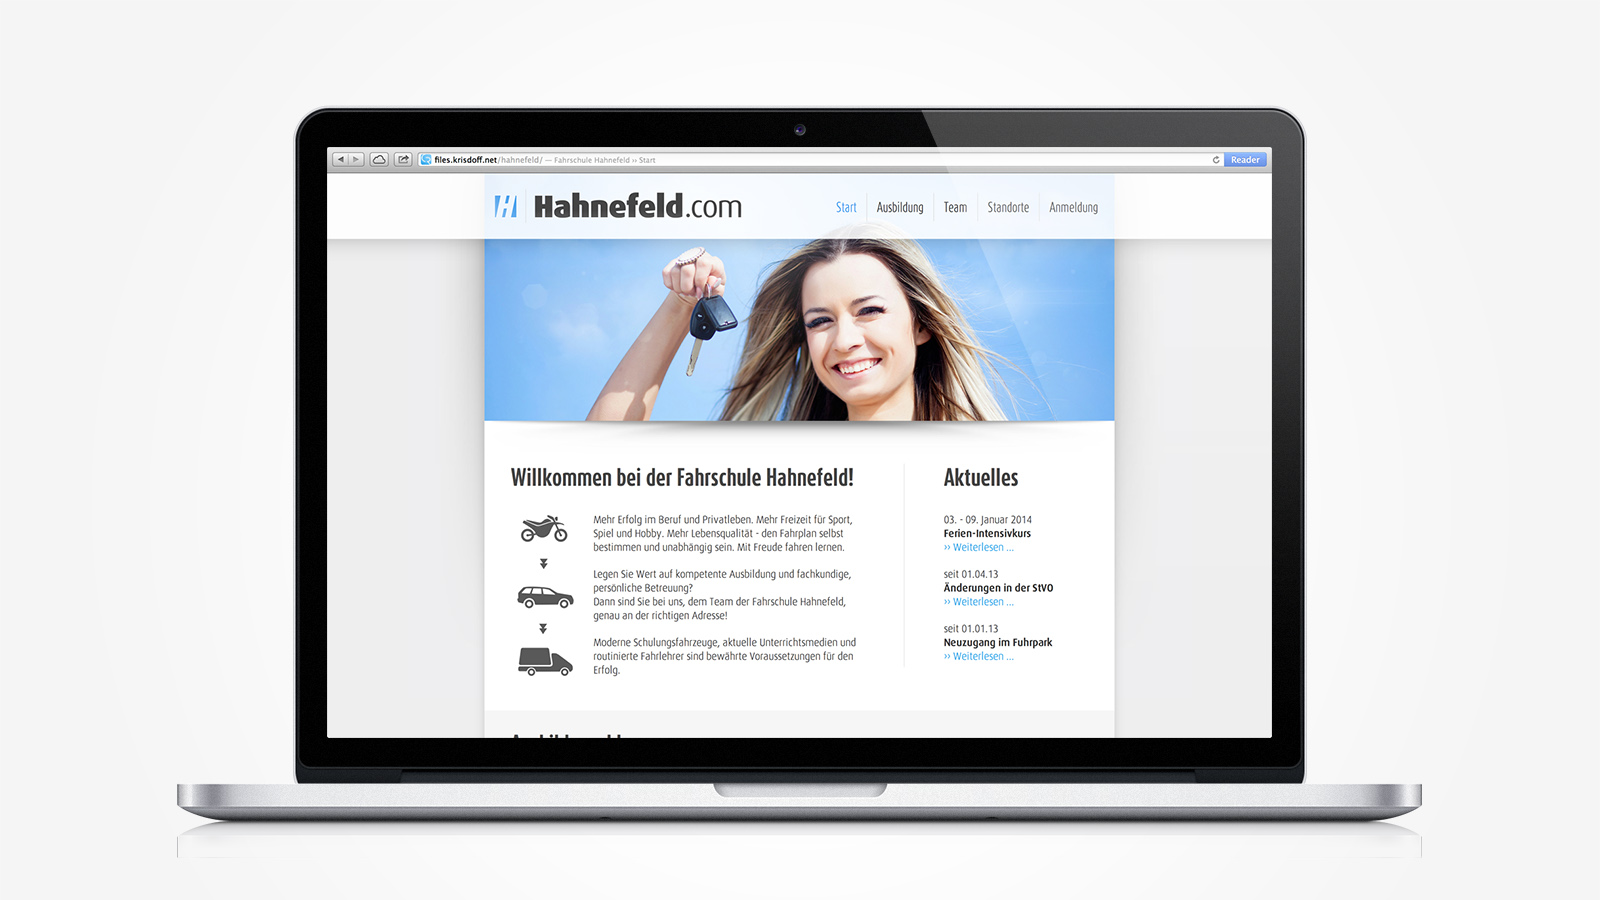 hahnefeld-com-website